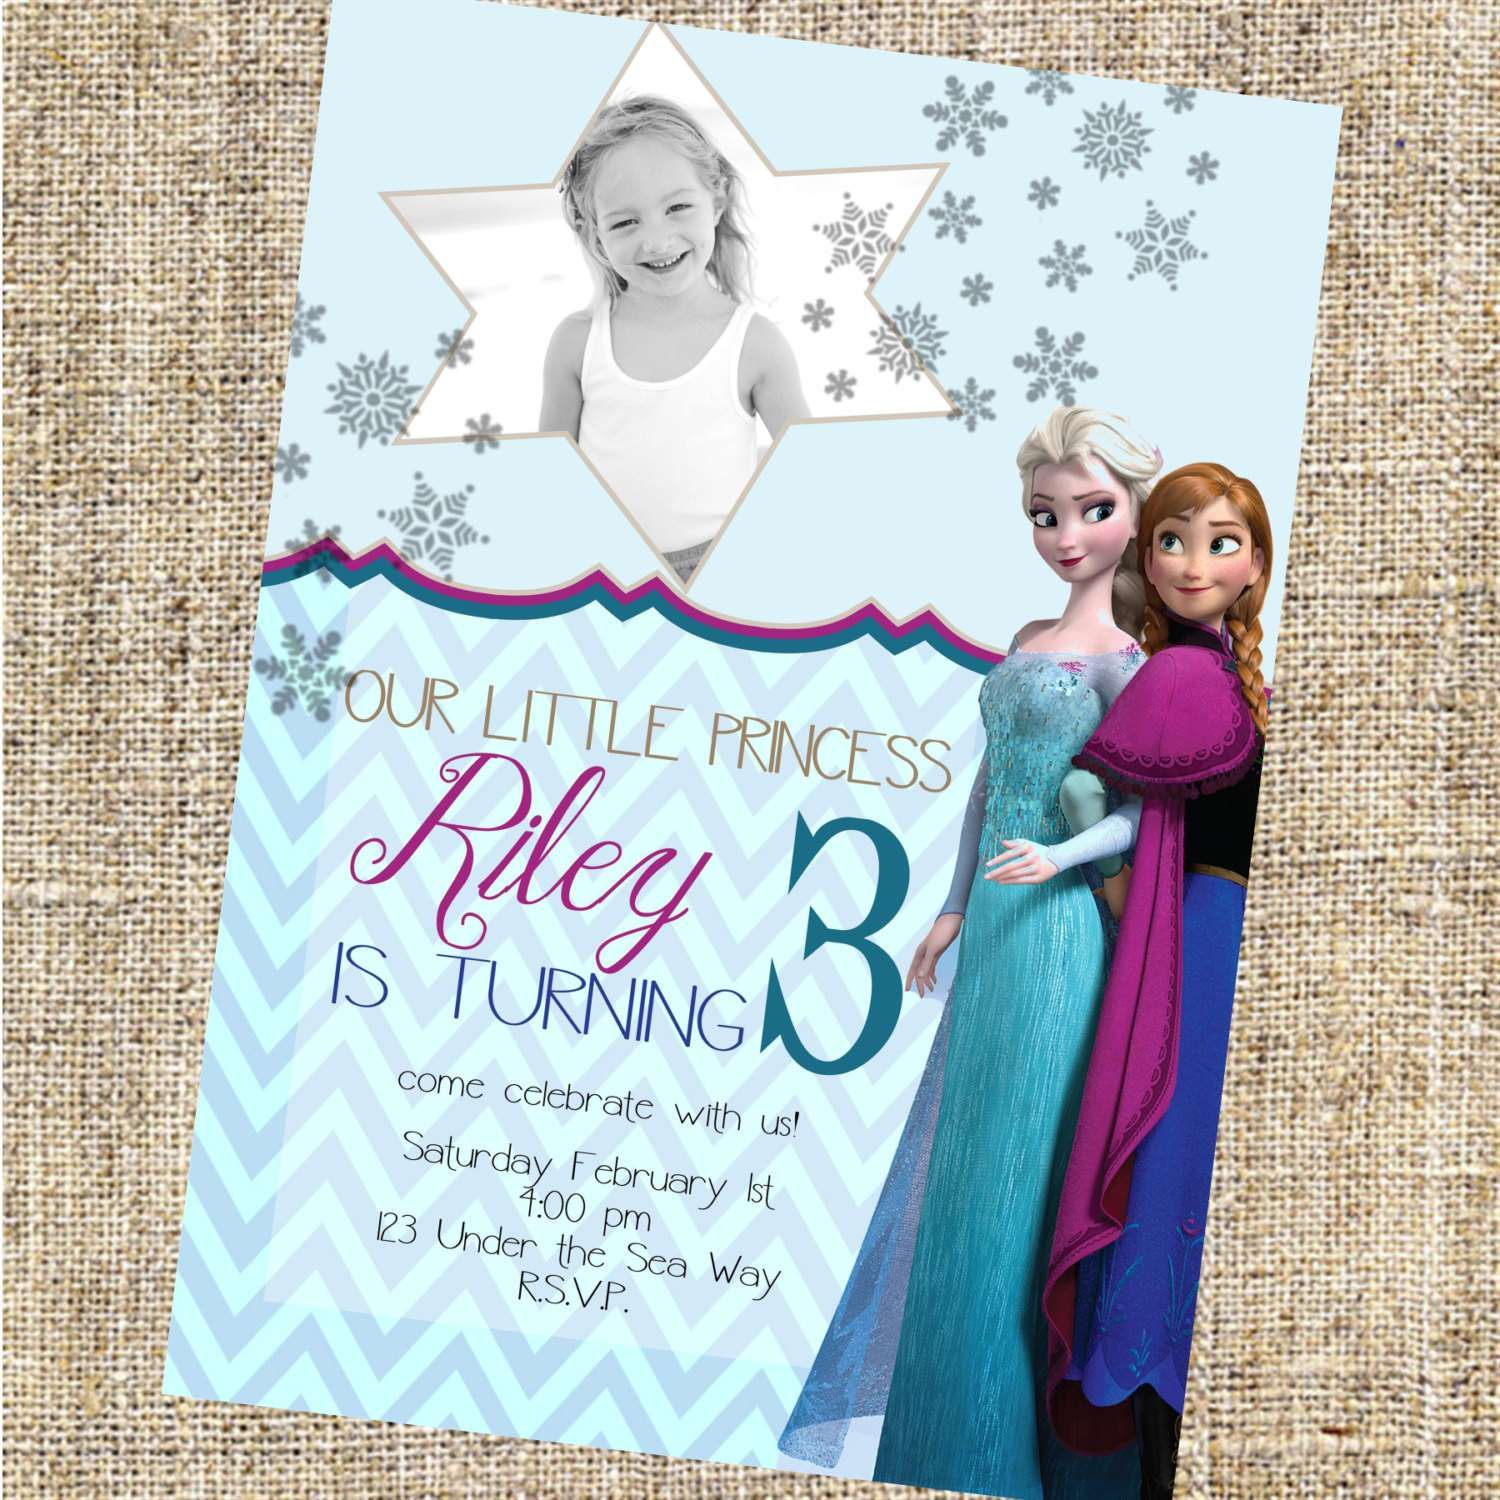 Frozen Birthday Invitations Free Templates Frozen Birthday Invitations Birthday Invitations Kids Frozen Birthday Party Invites